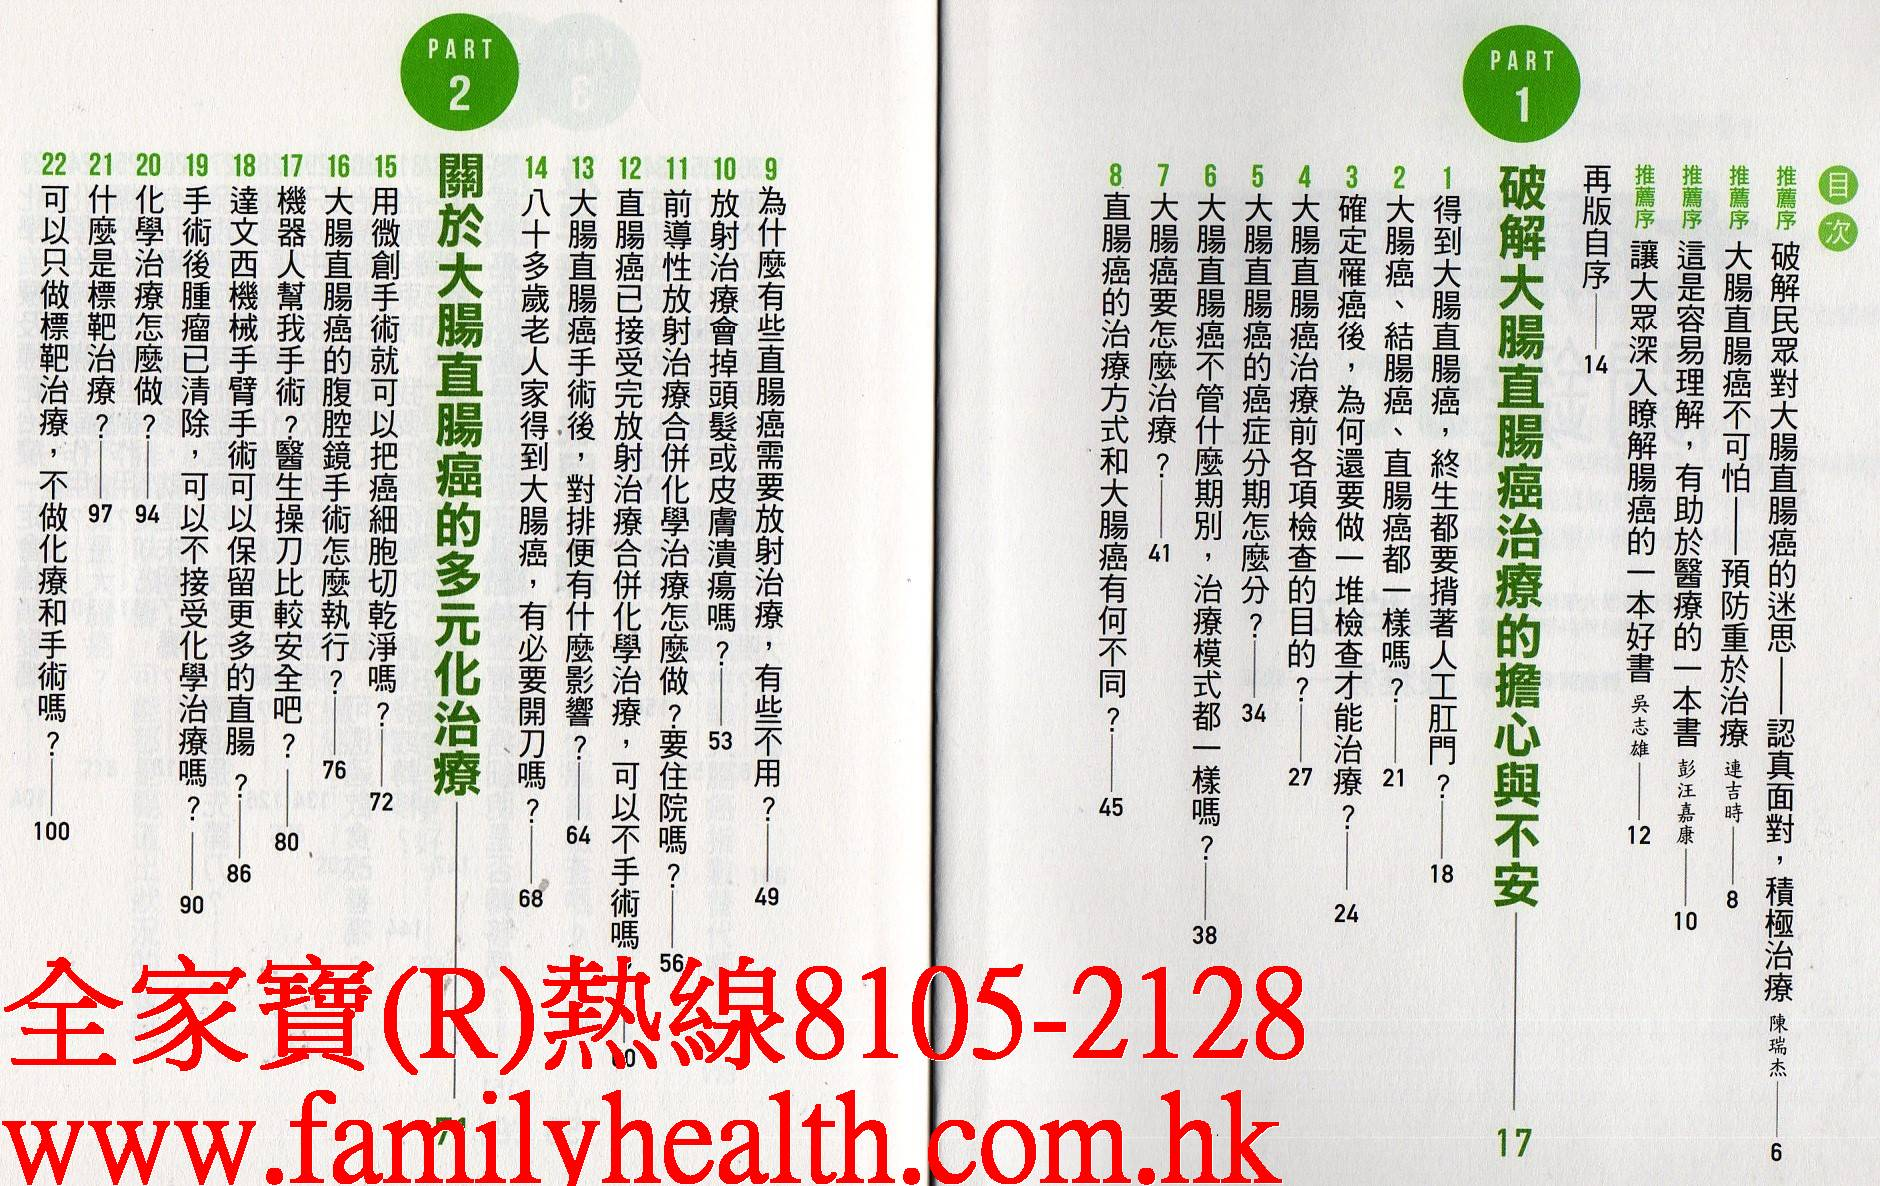 http://www.familyhealth.com.hk/files/full/1163_1.jpg